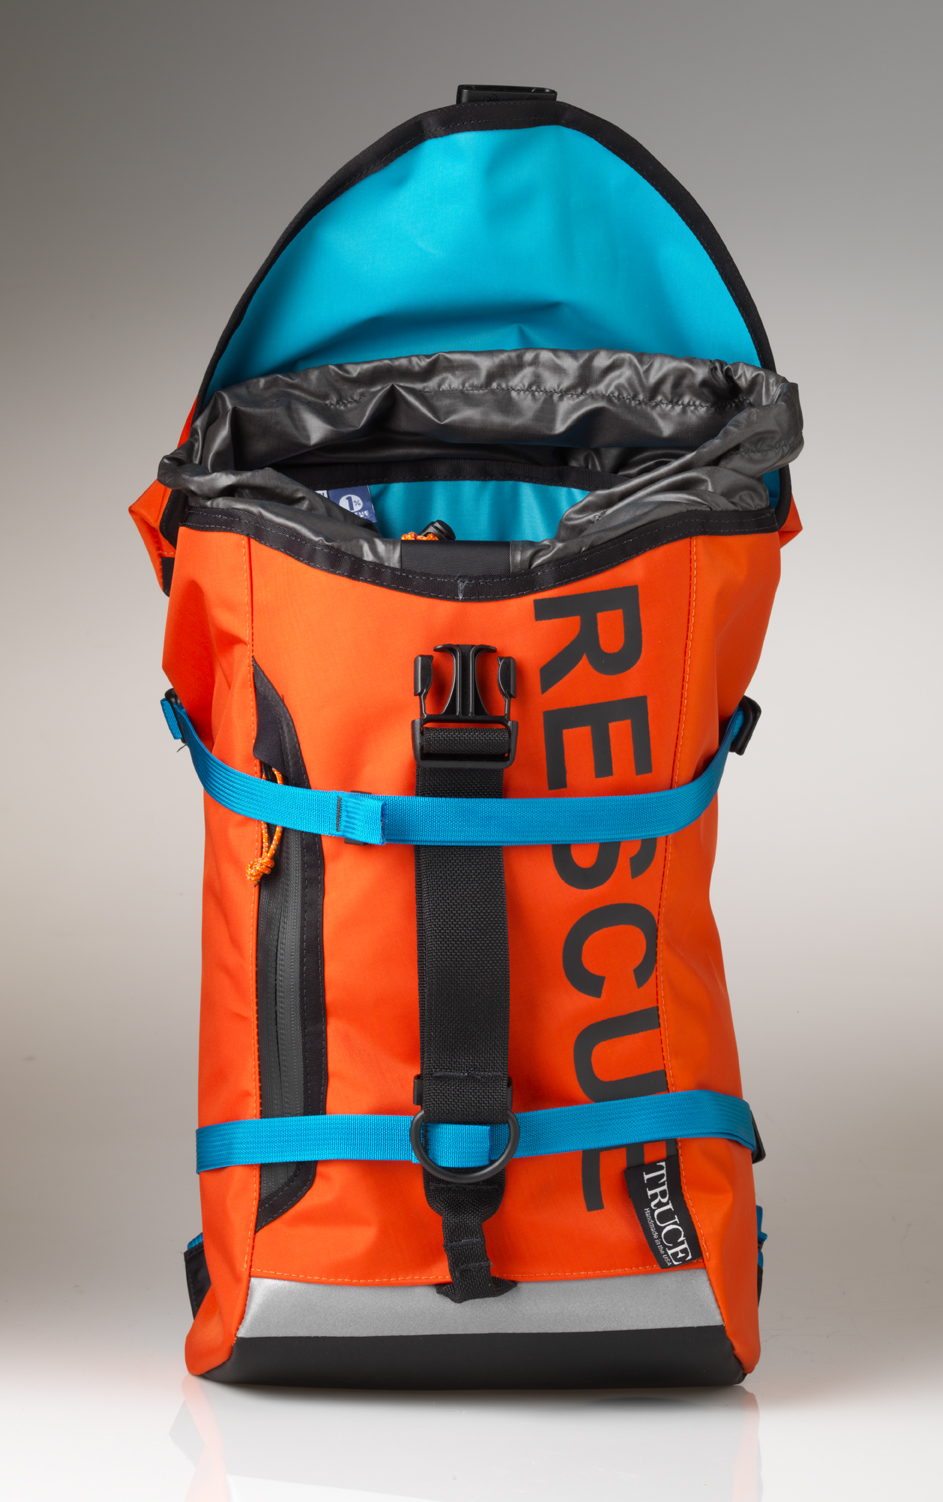 Truce: Air Rescue         This pack wants to go to sea! It's made of coast guard rescue drysuit scraps salvaged and upcycled into one of the strongest backpacks the human race has ever seen.                    Seam-sealed liners make it totally weatherproof.                   Made in Oregon                          $340              trucedesigns.com